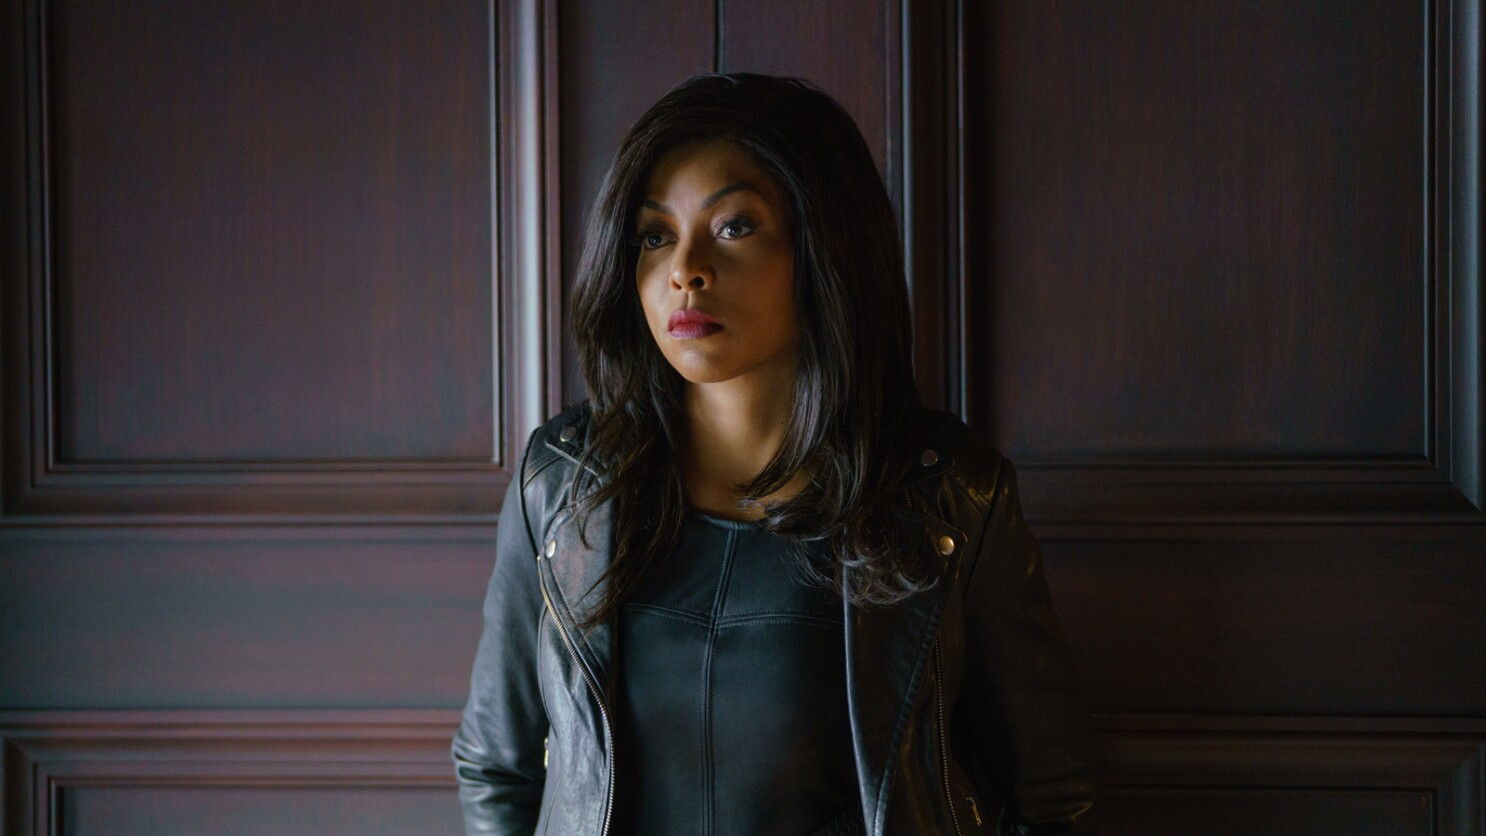 Review: Mired in melodrama, this 'Proud Mary' fails to keep rollin